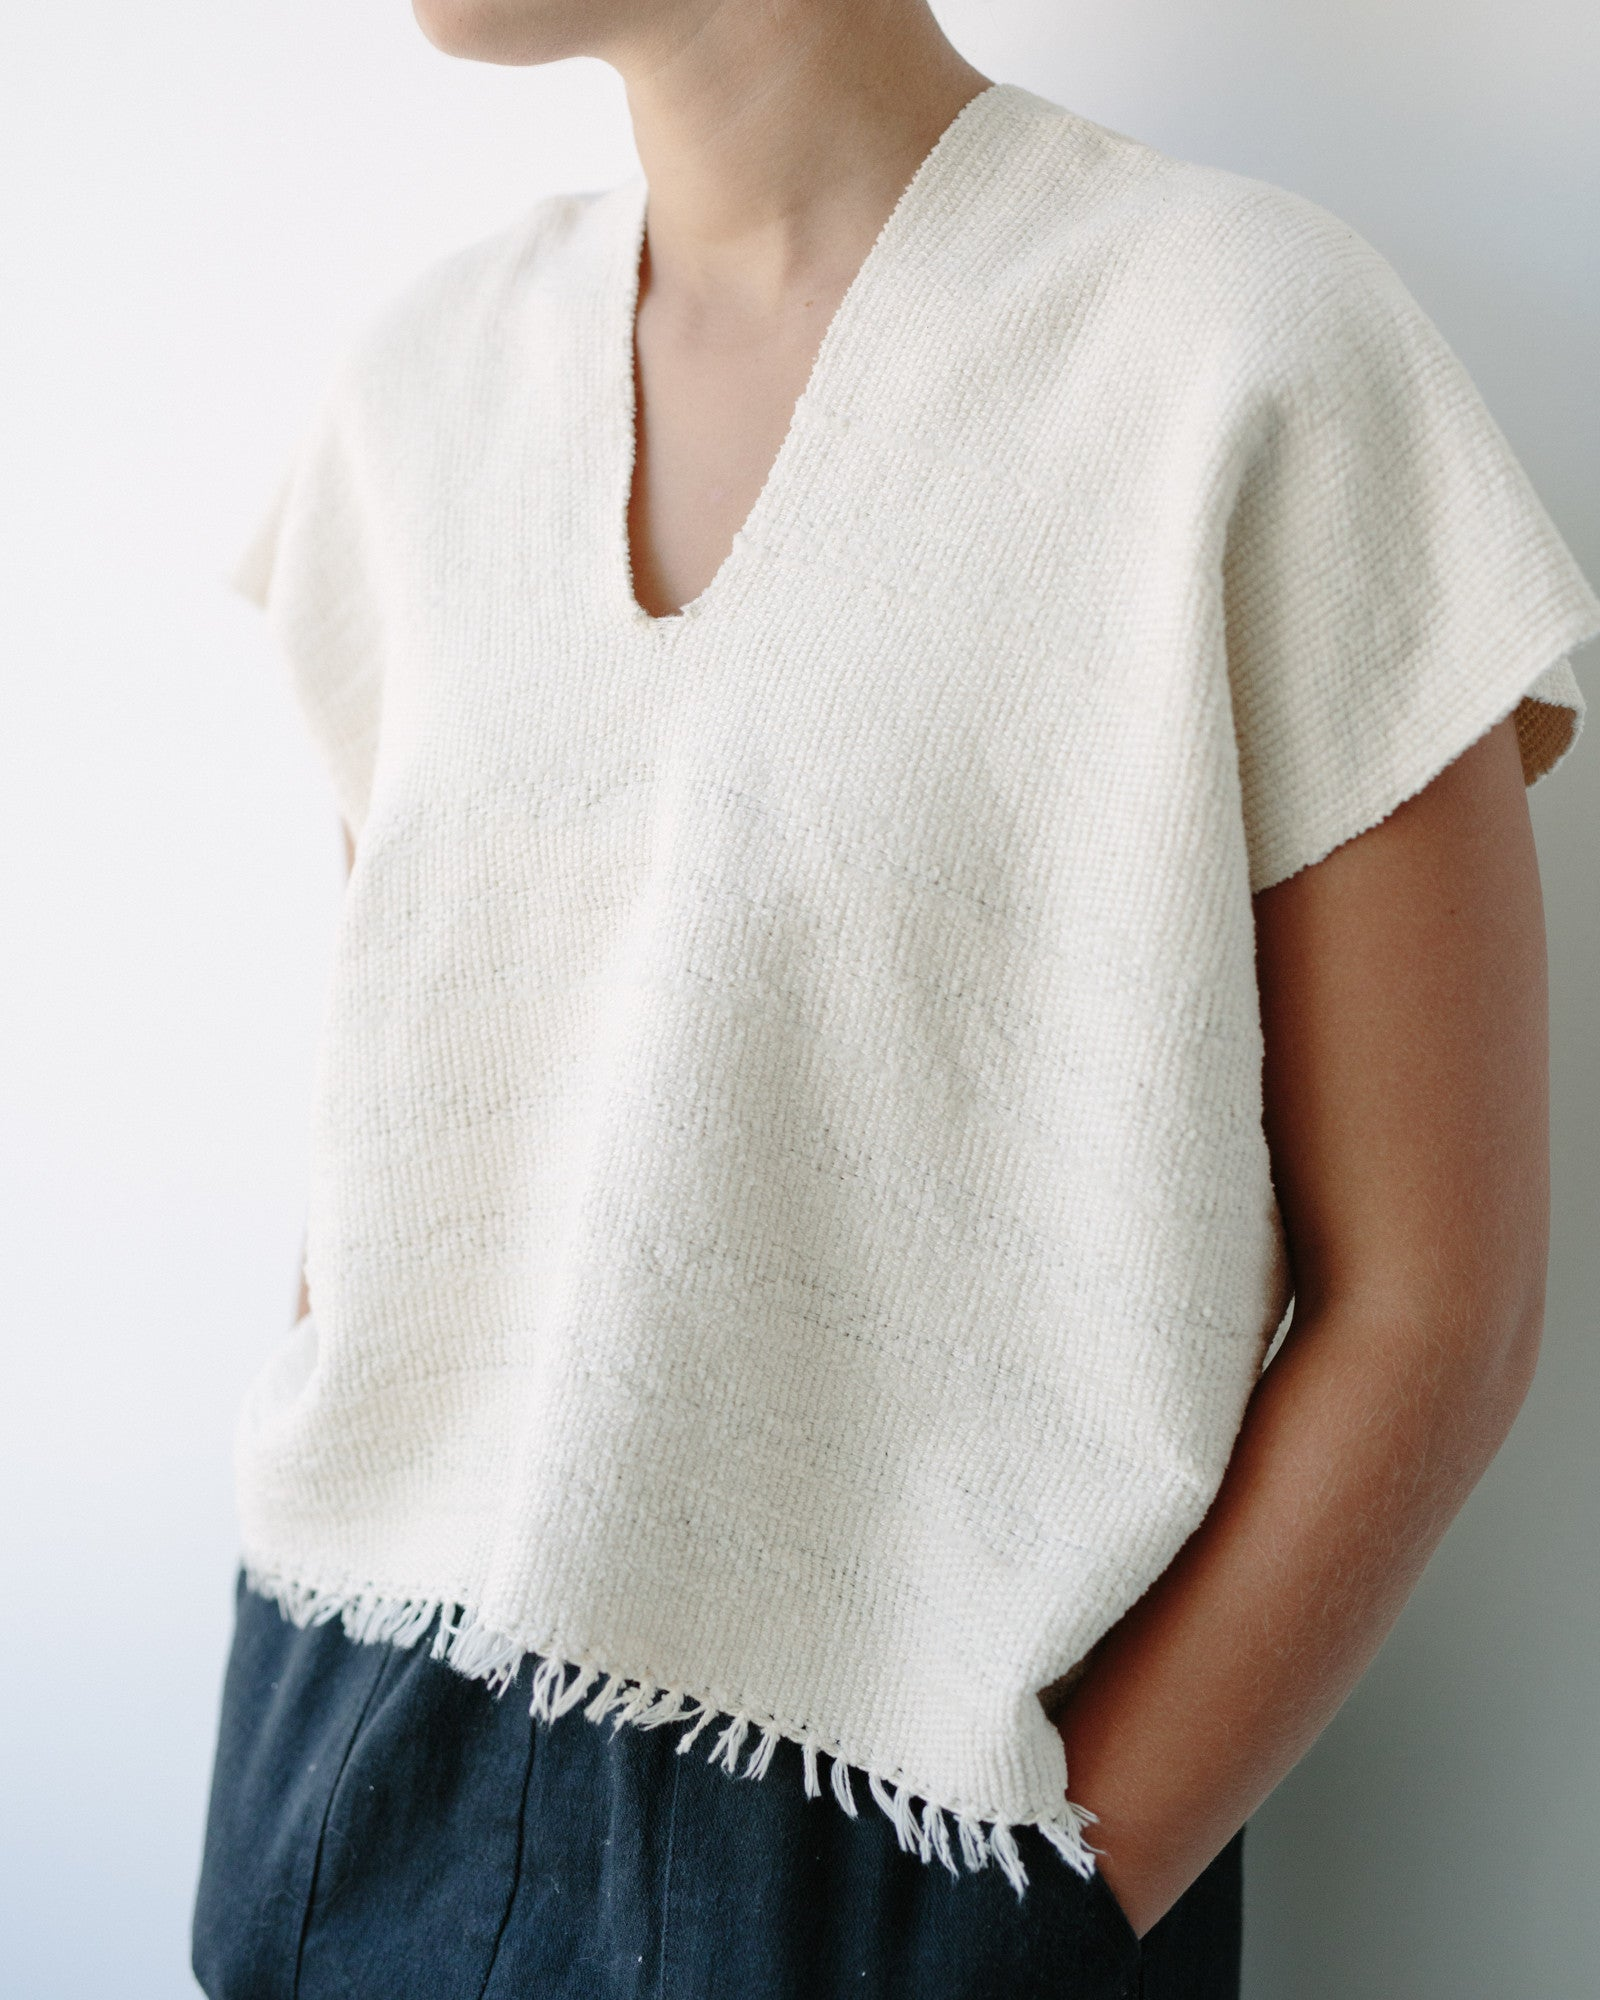 Hand Woven Shirt, Thick Cotton